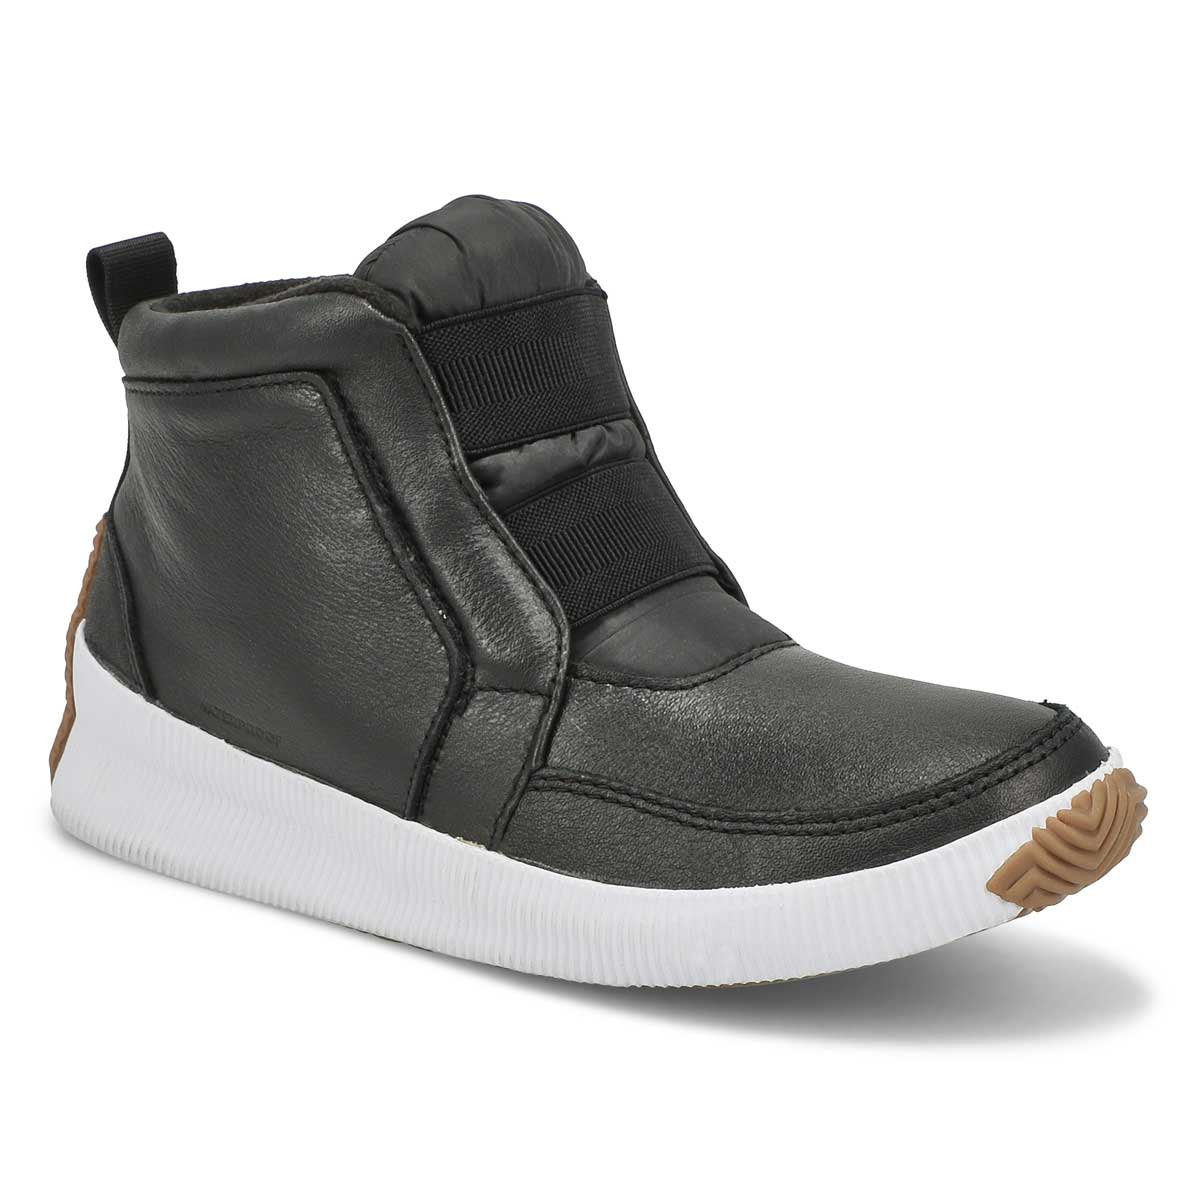 Women's Out N' About Plus Mid Boot - Black